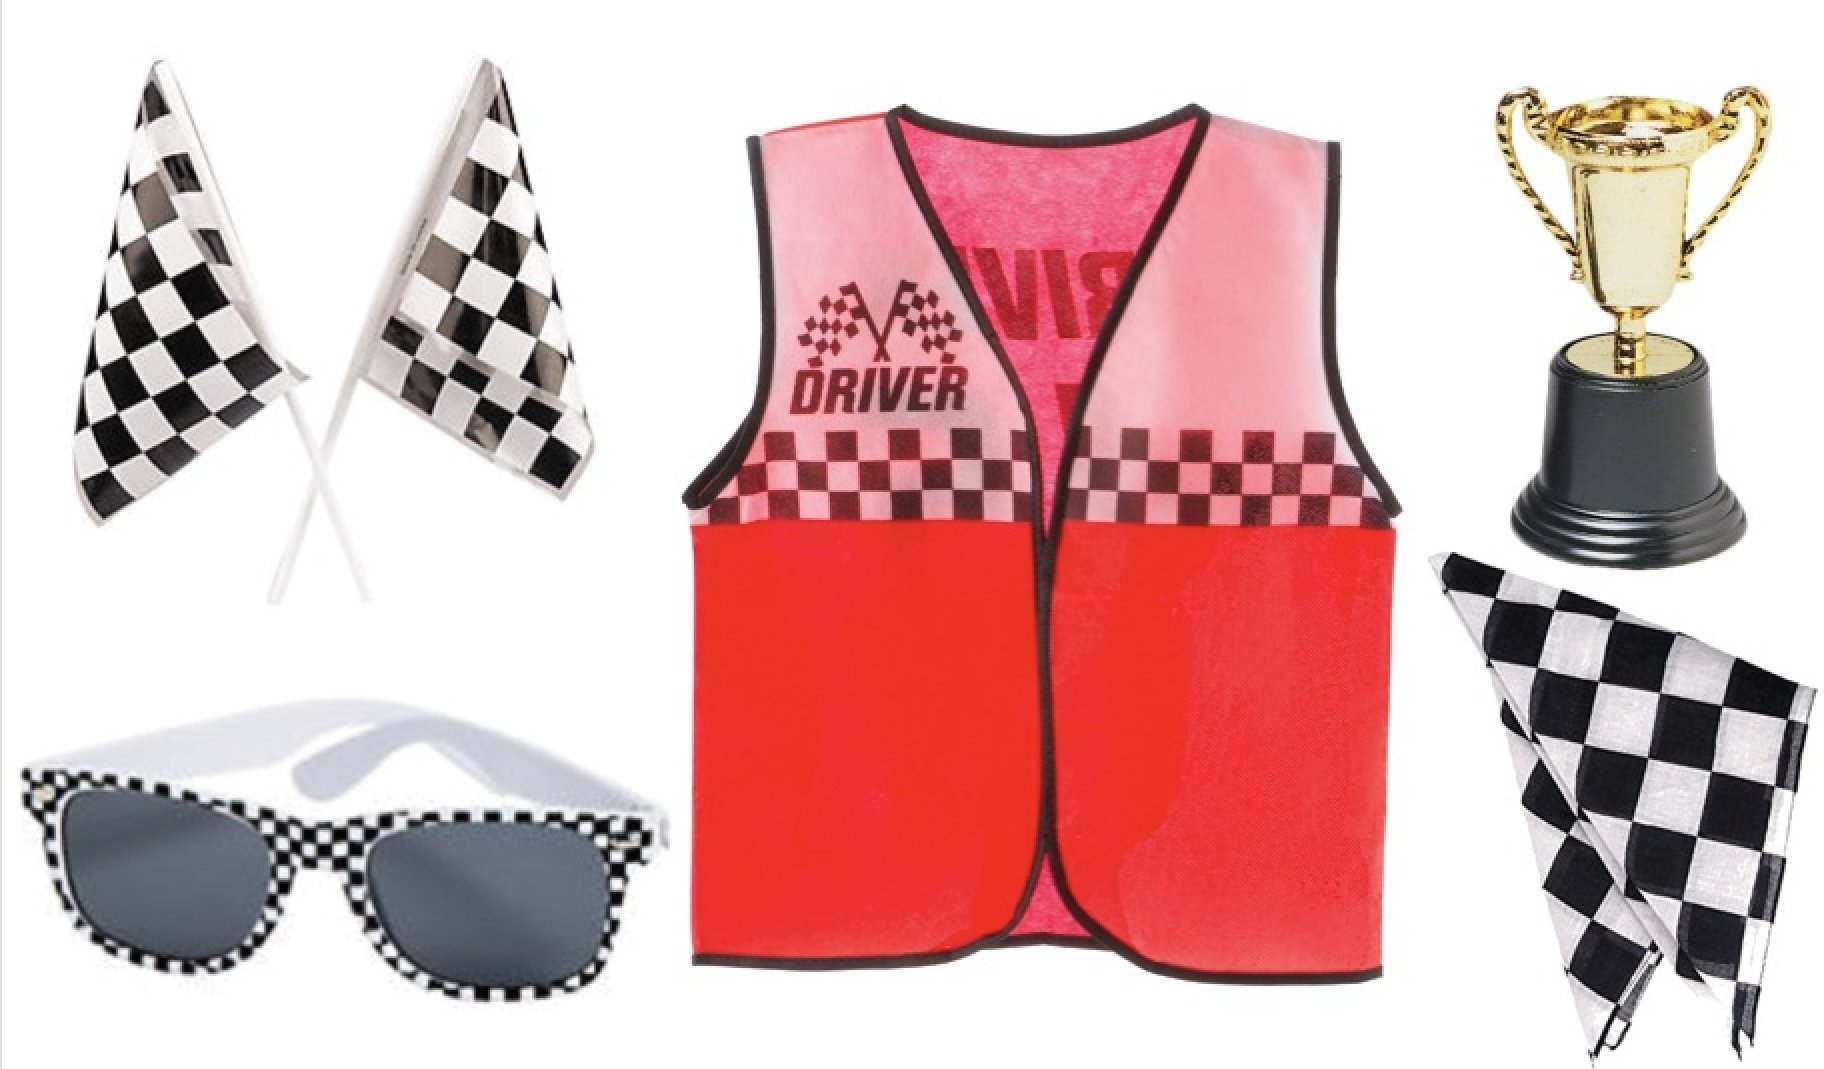 Race Car Driver Role Play Costume Set- Vest, Bandana, Flags, Sunglasses, and Trophy